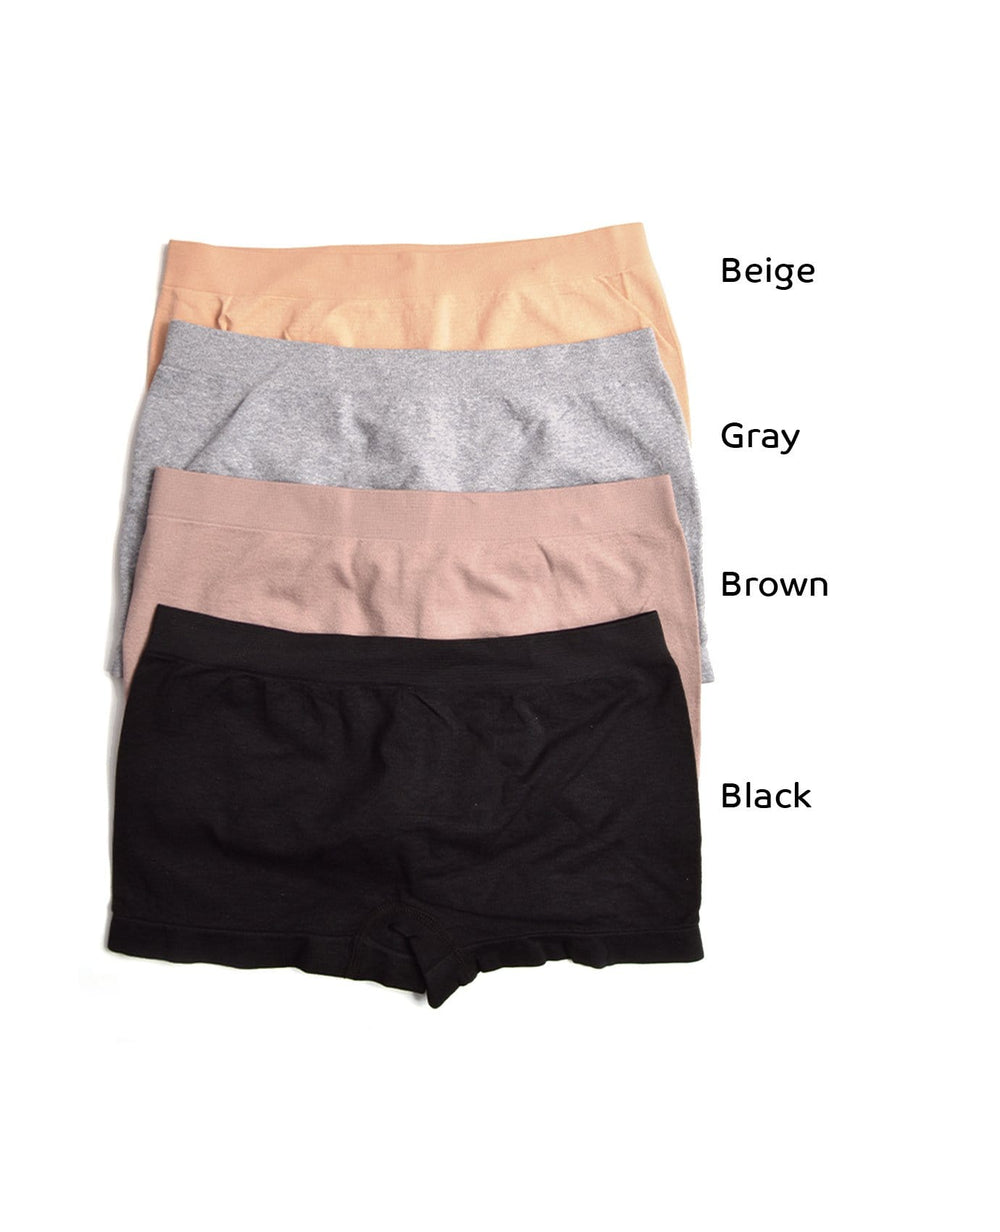 Sofra Neutral Color Boy Short